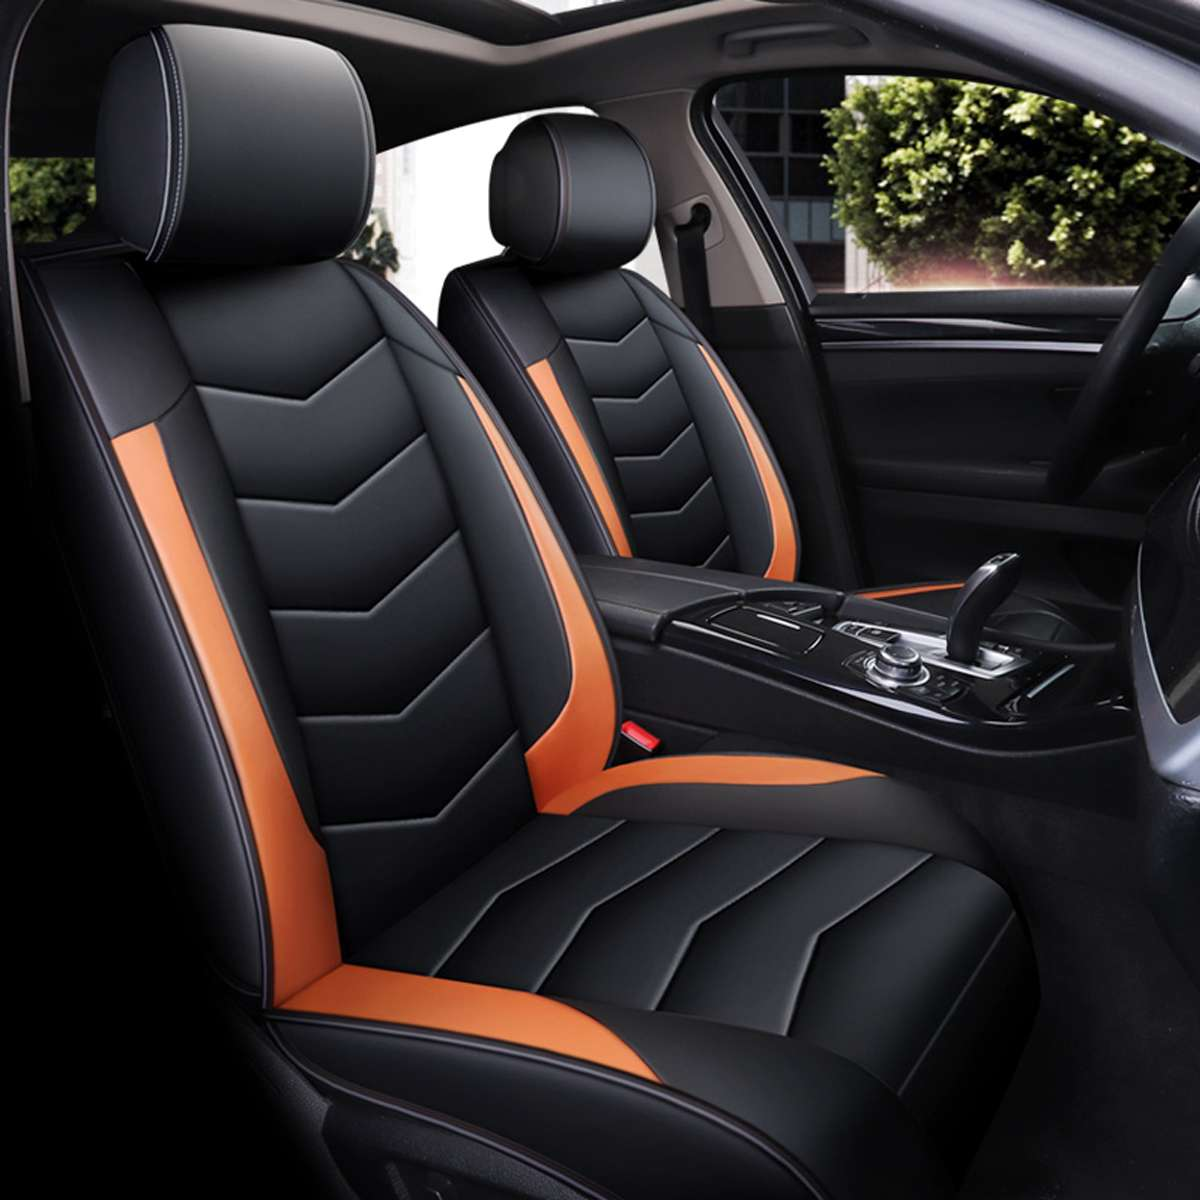 Universal PU leather car seat cover for BMW for Peugeot car accessories front seat protector for vehicle seat car-styling